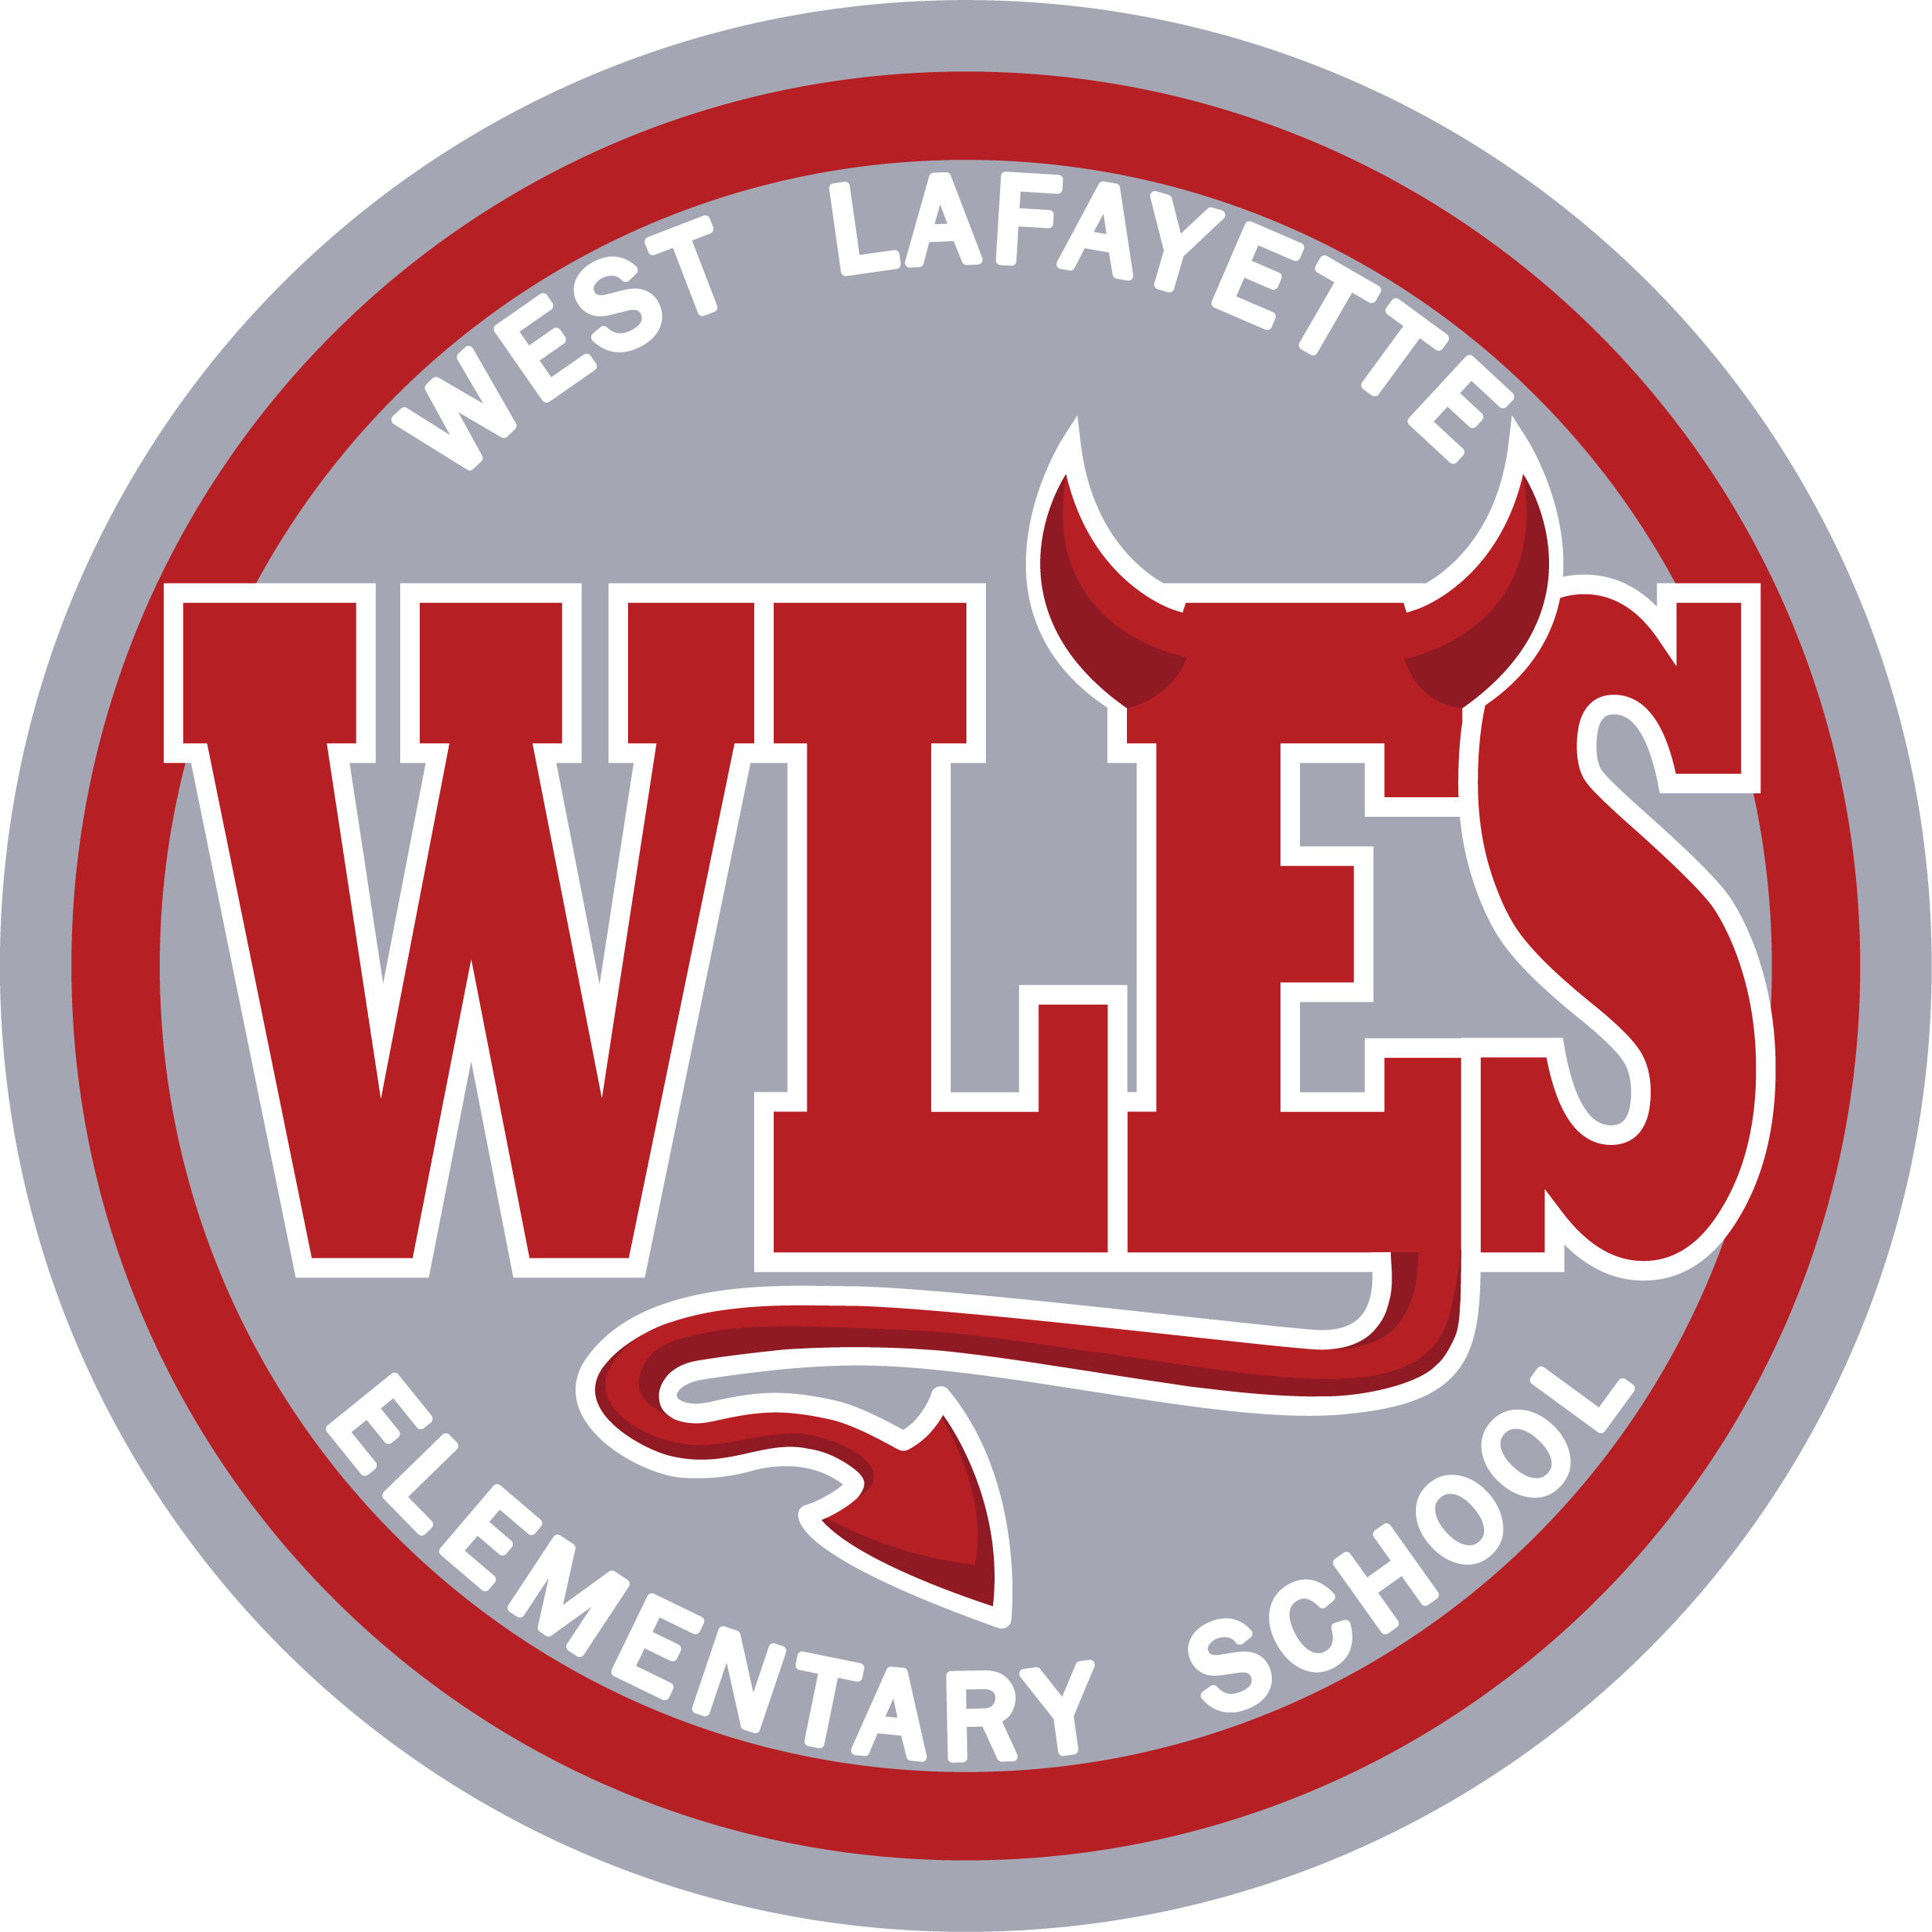 West Lafayette School Corporation Logo